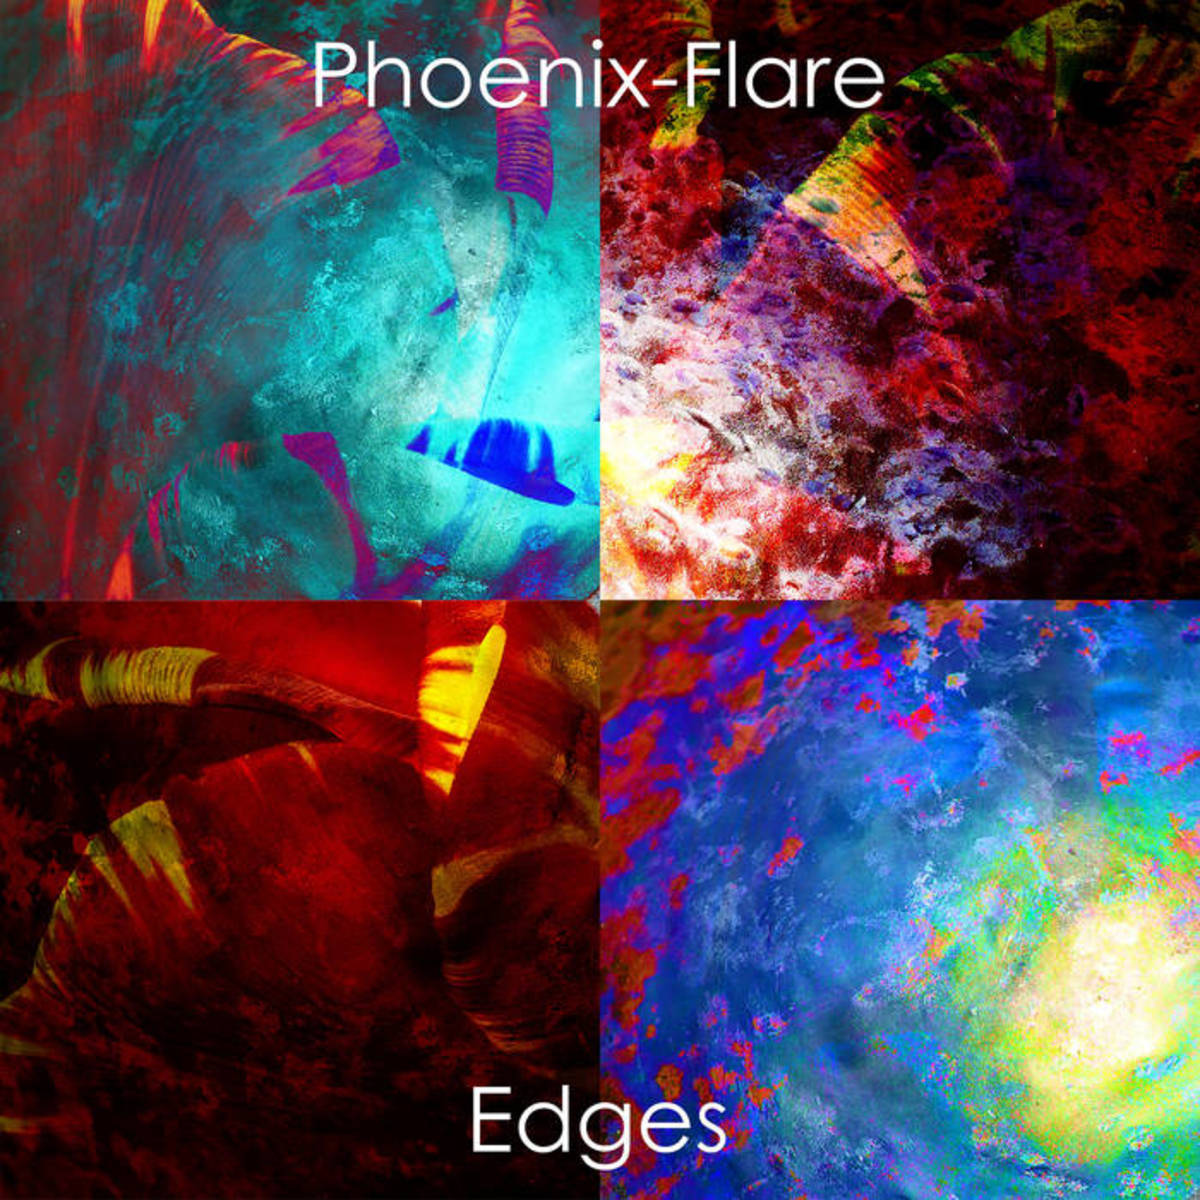 synthpop-ep-review-edges-by-phoenix-flare